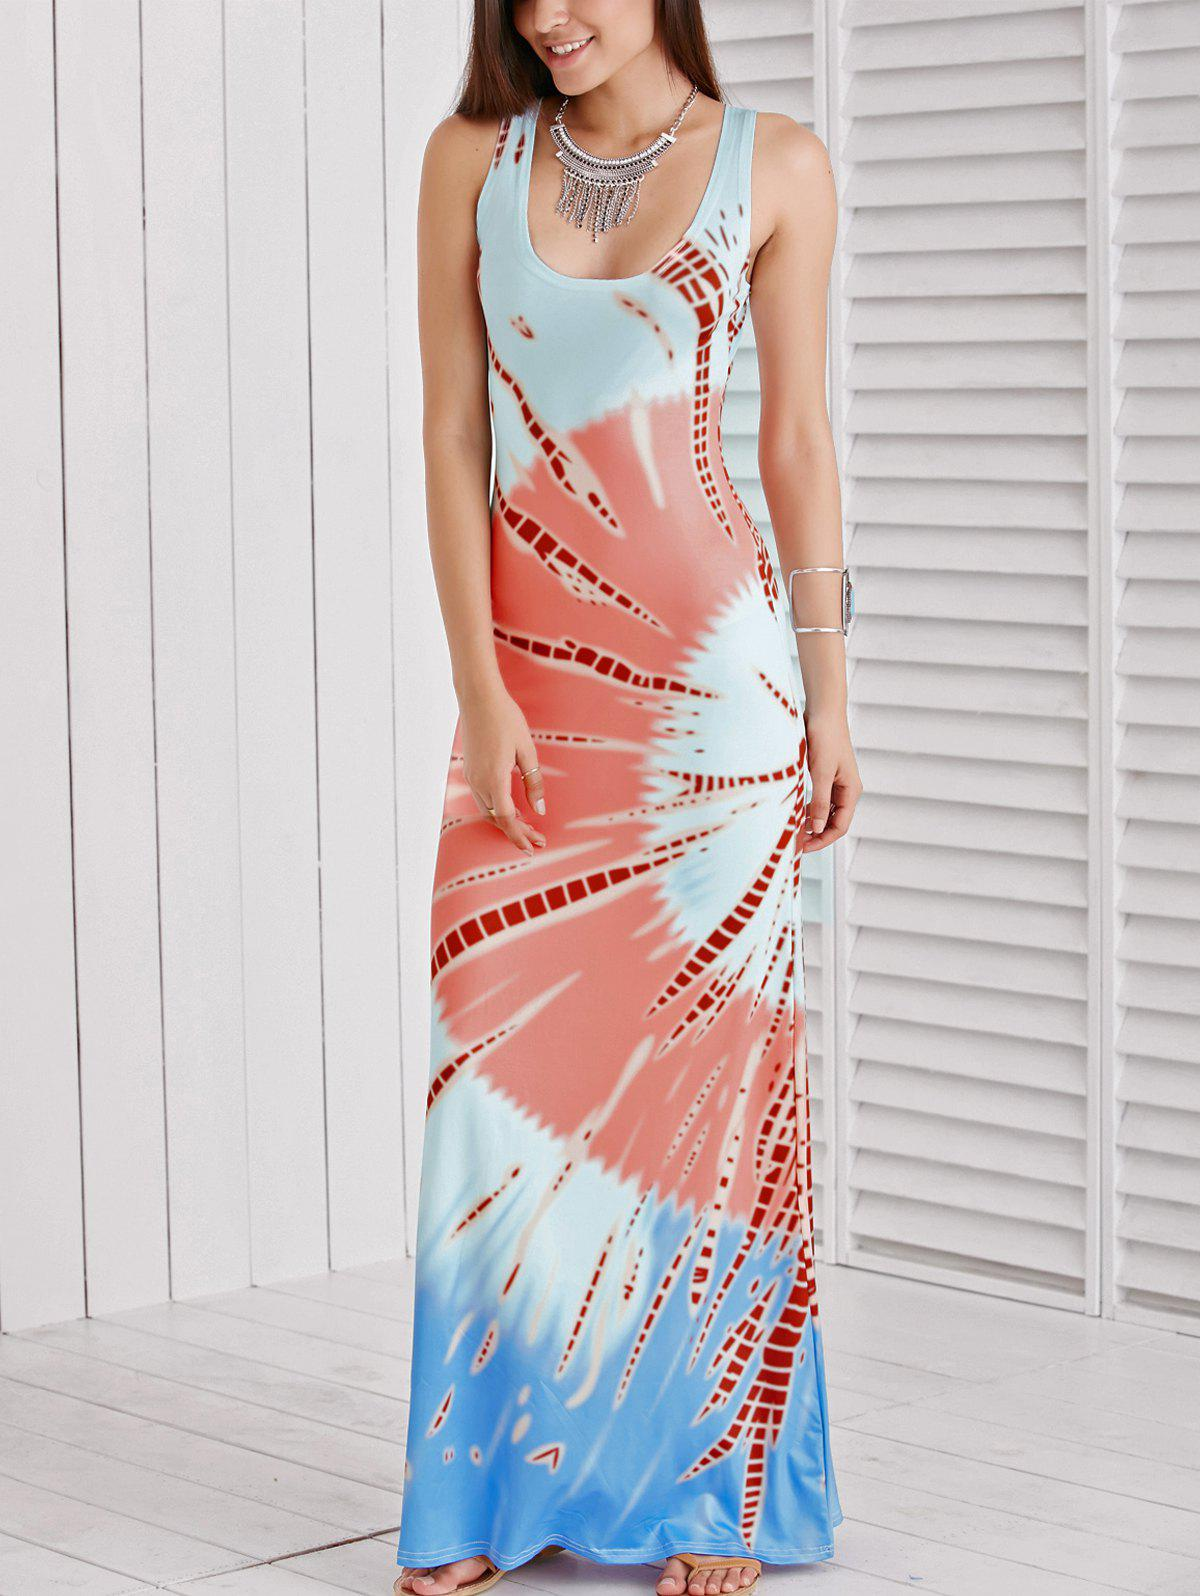 Women's U Neck Sleeveless Printed Maxi Dress - COLORMIX XL